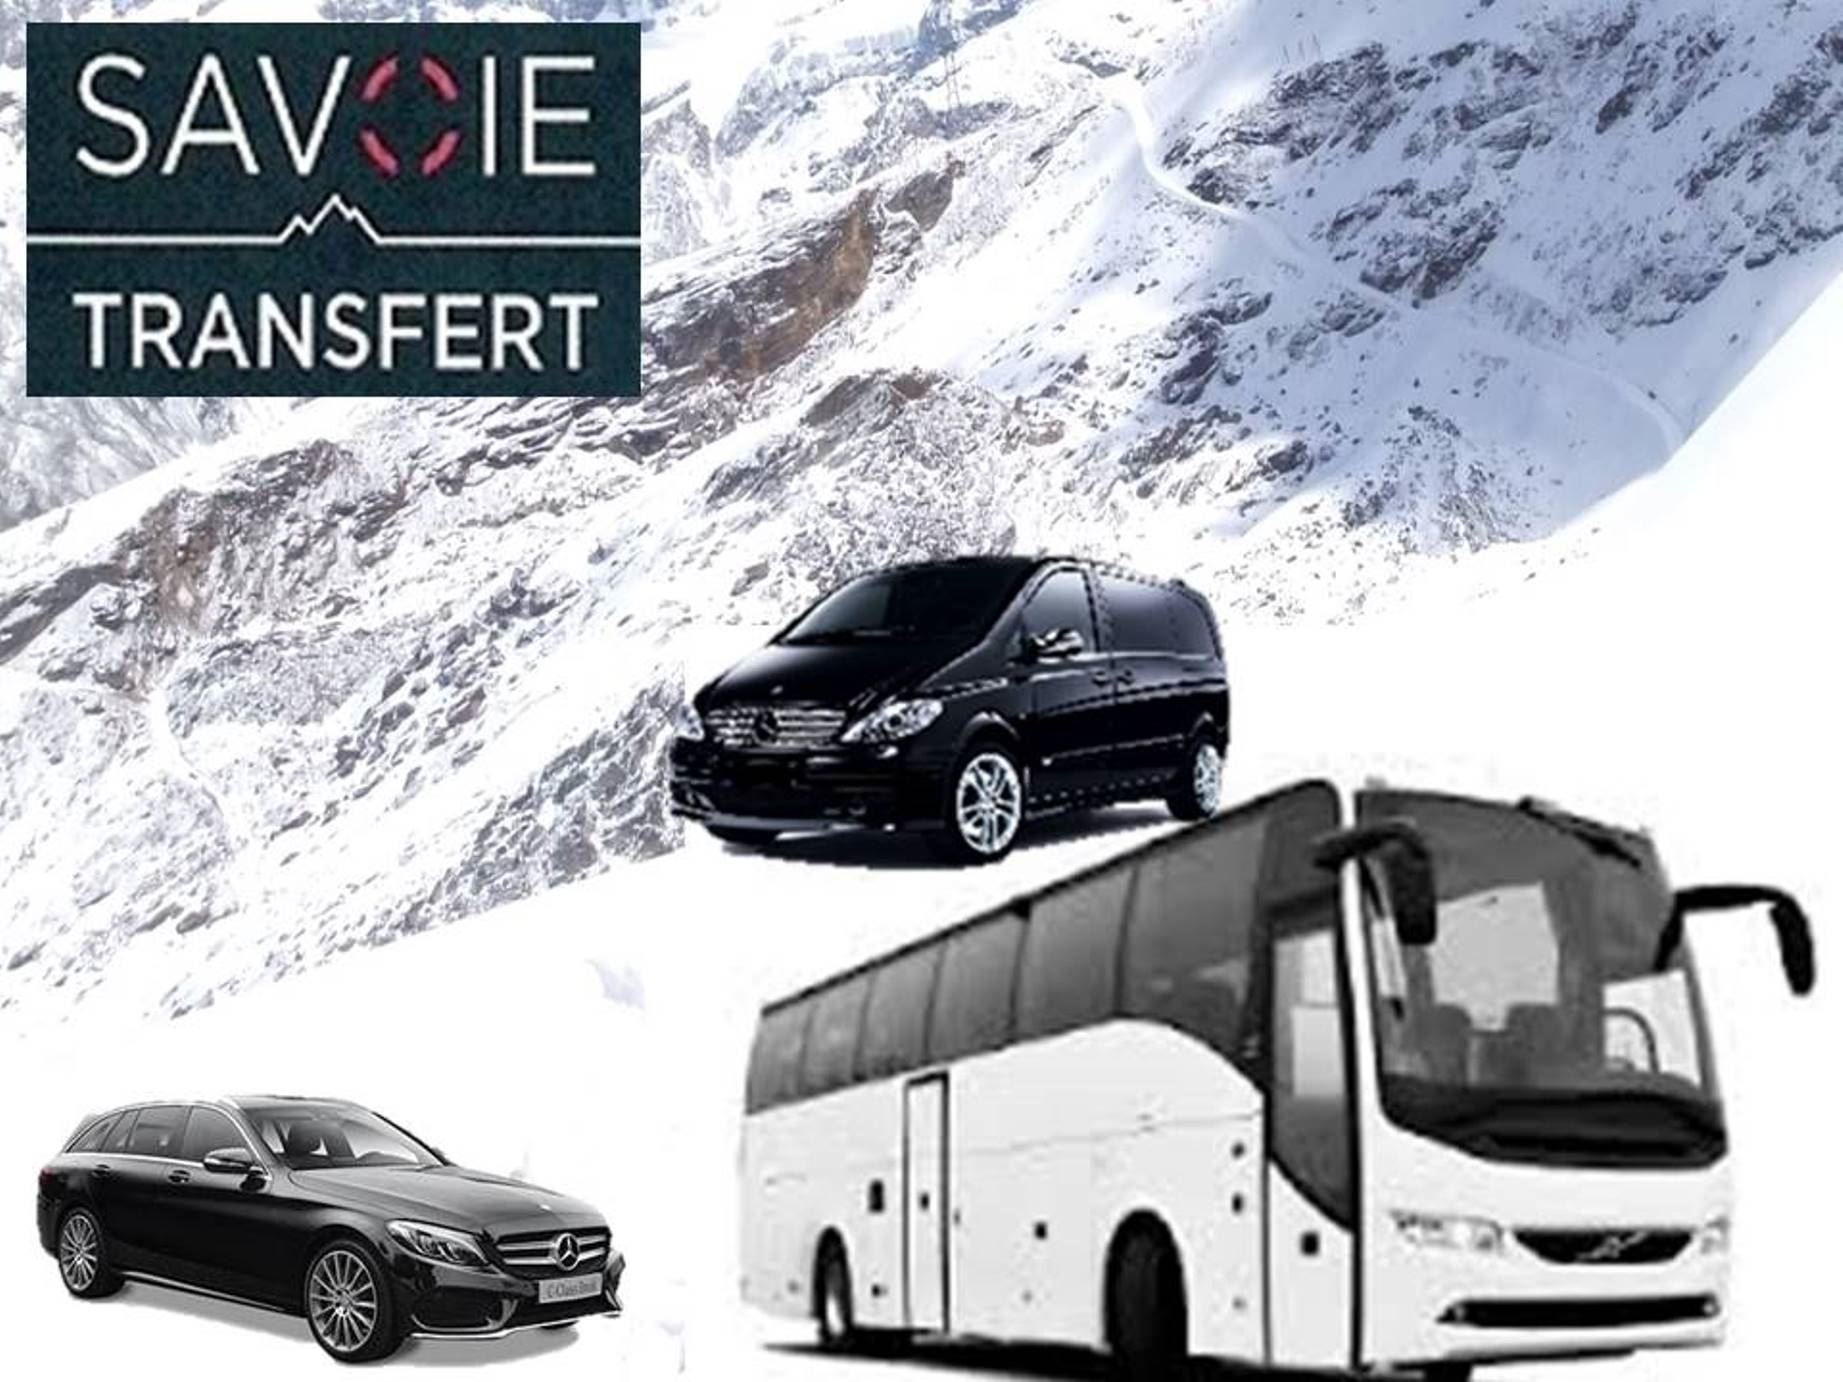 PRIVATE TRANSFER from LYON AIPORT with VAL THORENS TRANSFERT